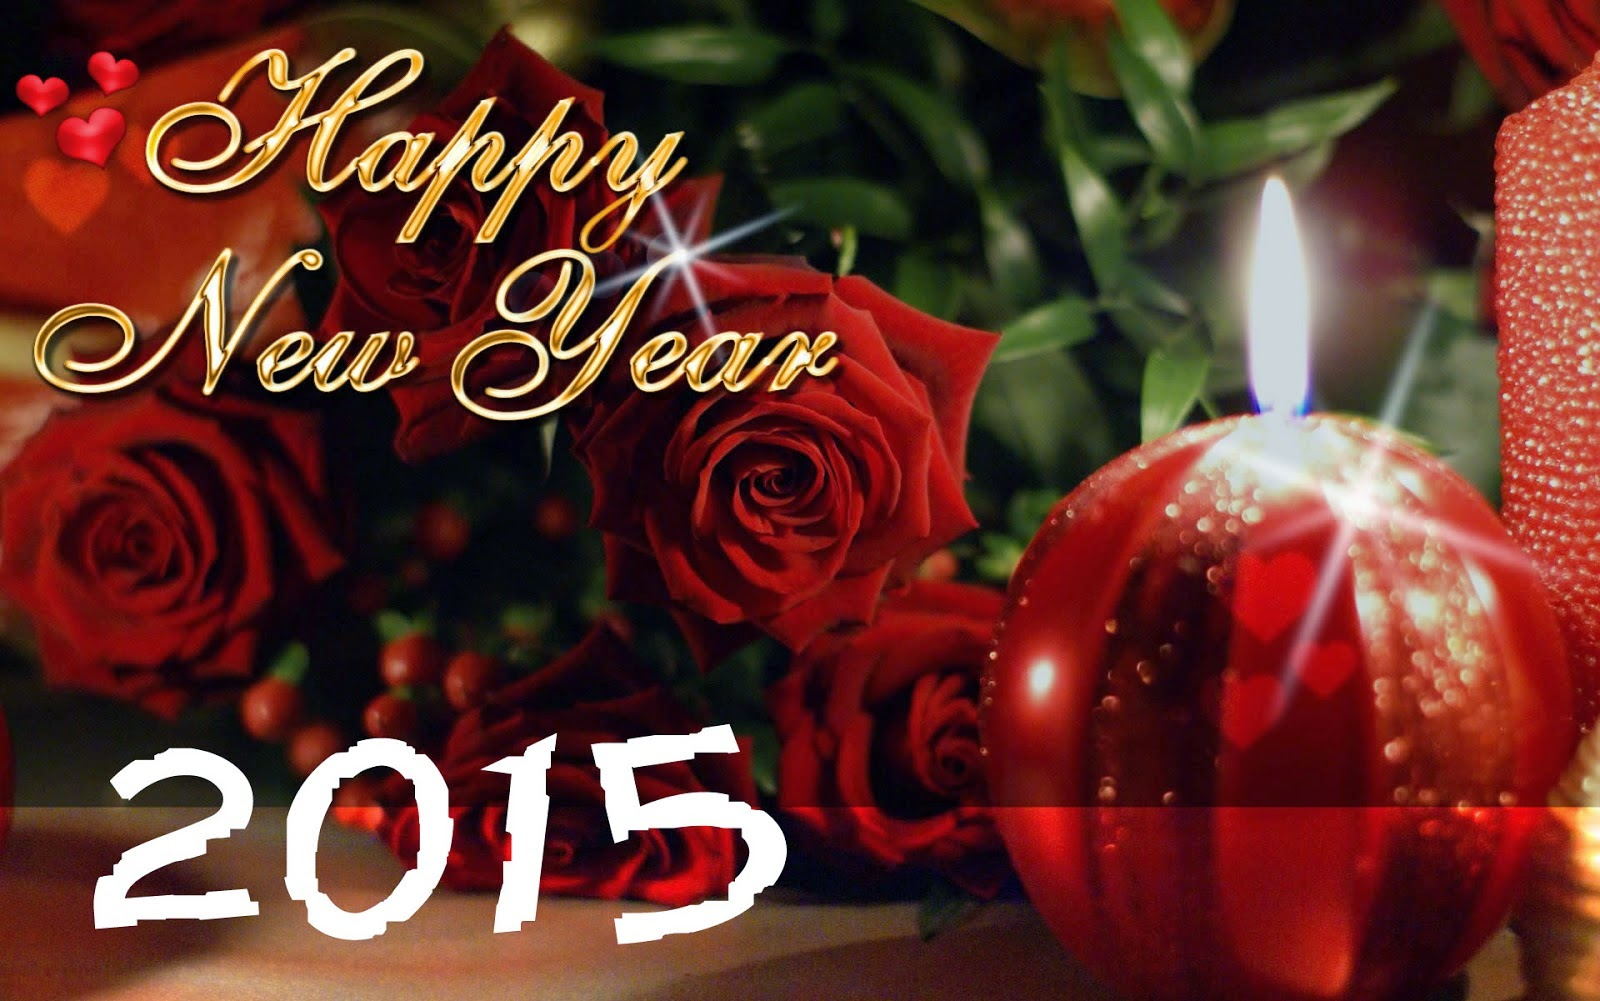 happy new year images ,happy new year 2015 images, happy new year 2015 cool images , happy new year 2015 HD images, happy new year HD wallpapers, happy new year cool HD walllpapers ,